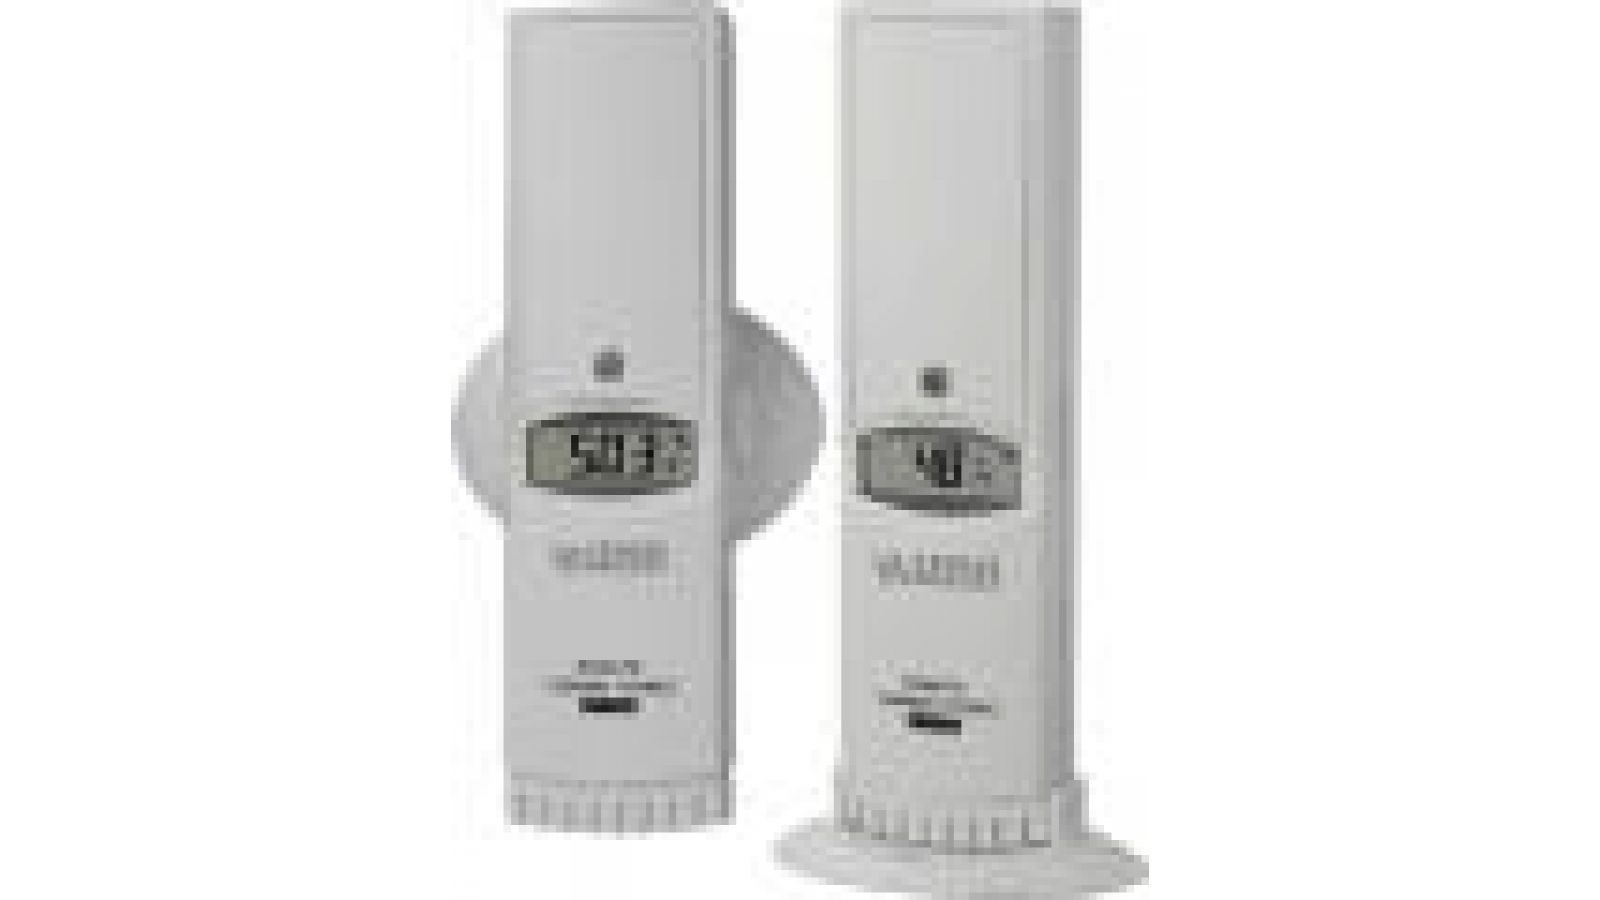 TX28U-ITWireless Temperature & Humidity Sensor